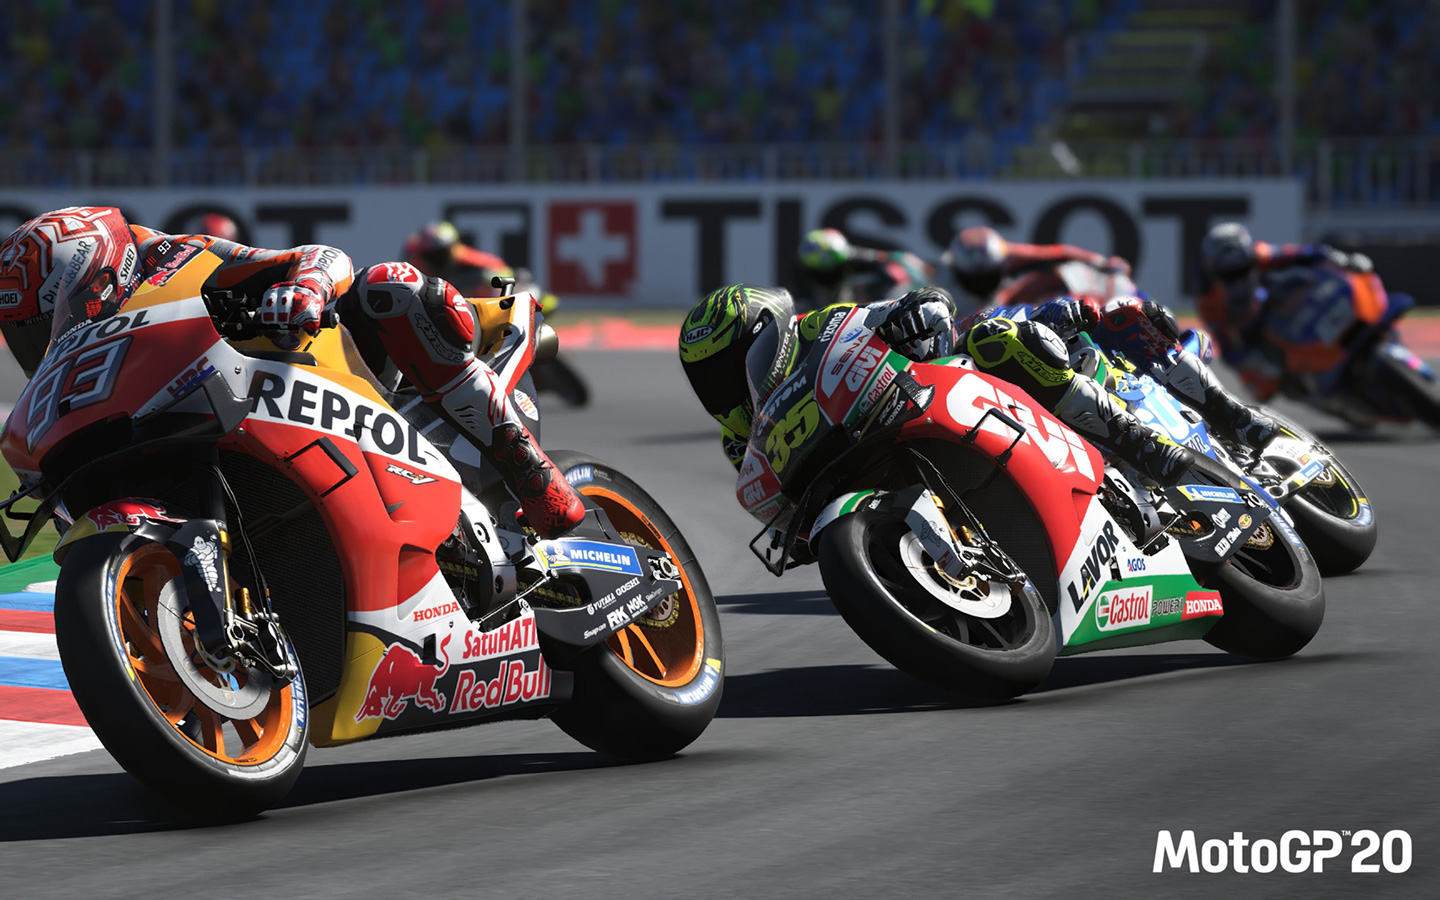 MotoGP 20 Wallpaper in 1440x900